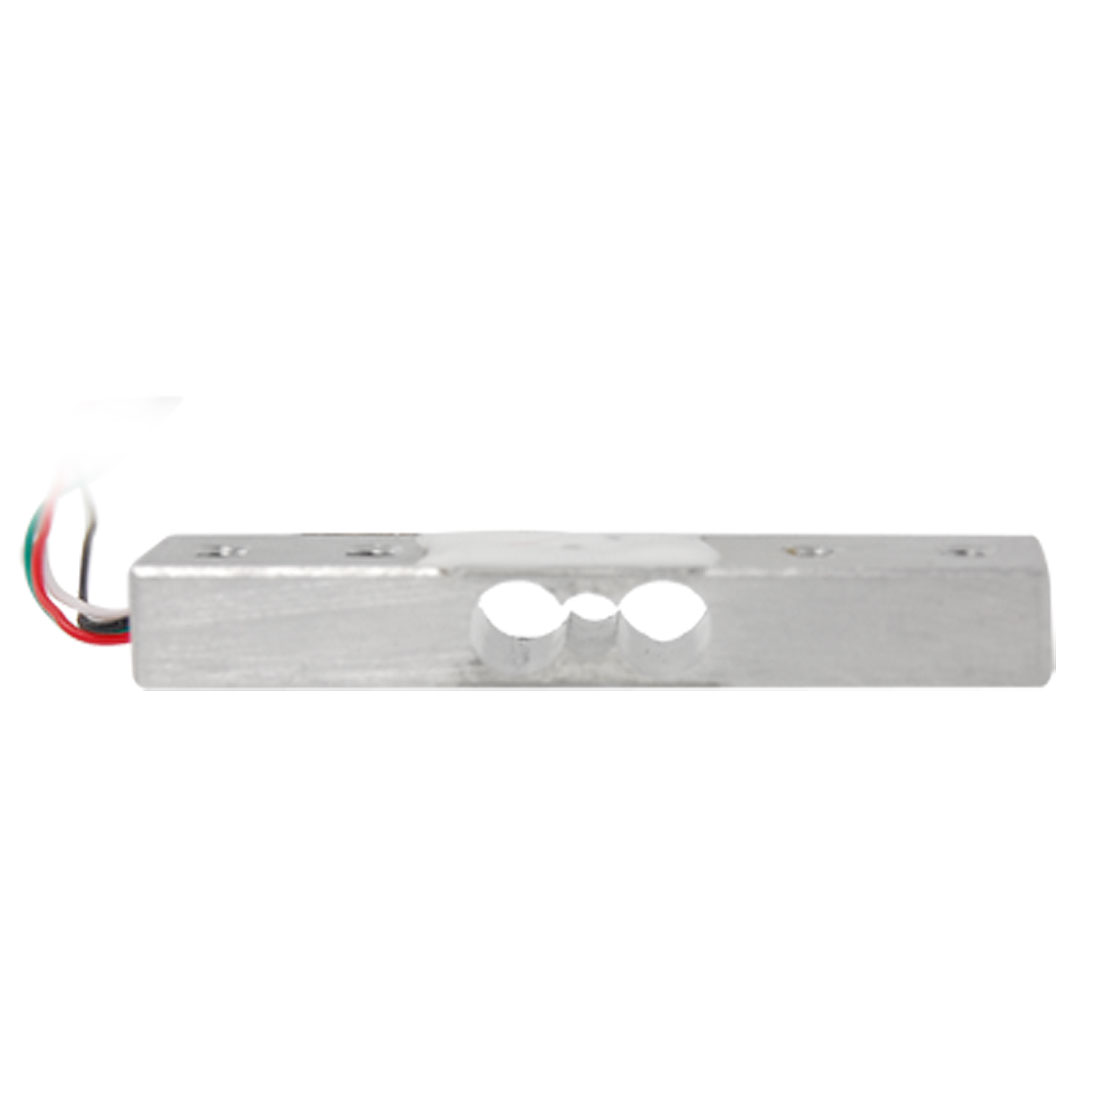 Electronic Balance Weighing Sensor Load Cell 0-1Kg